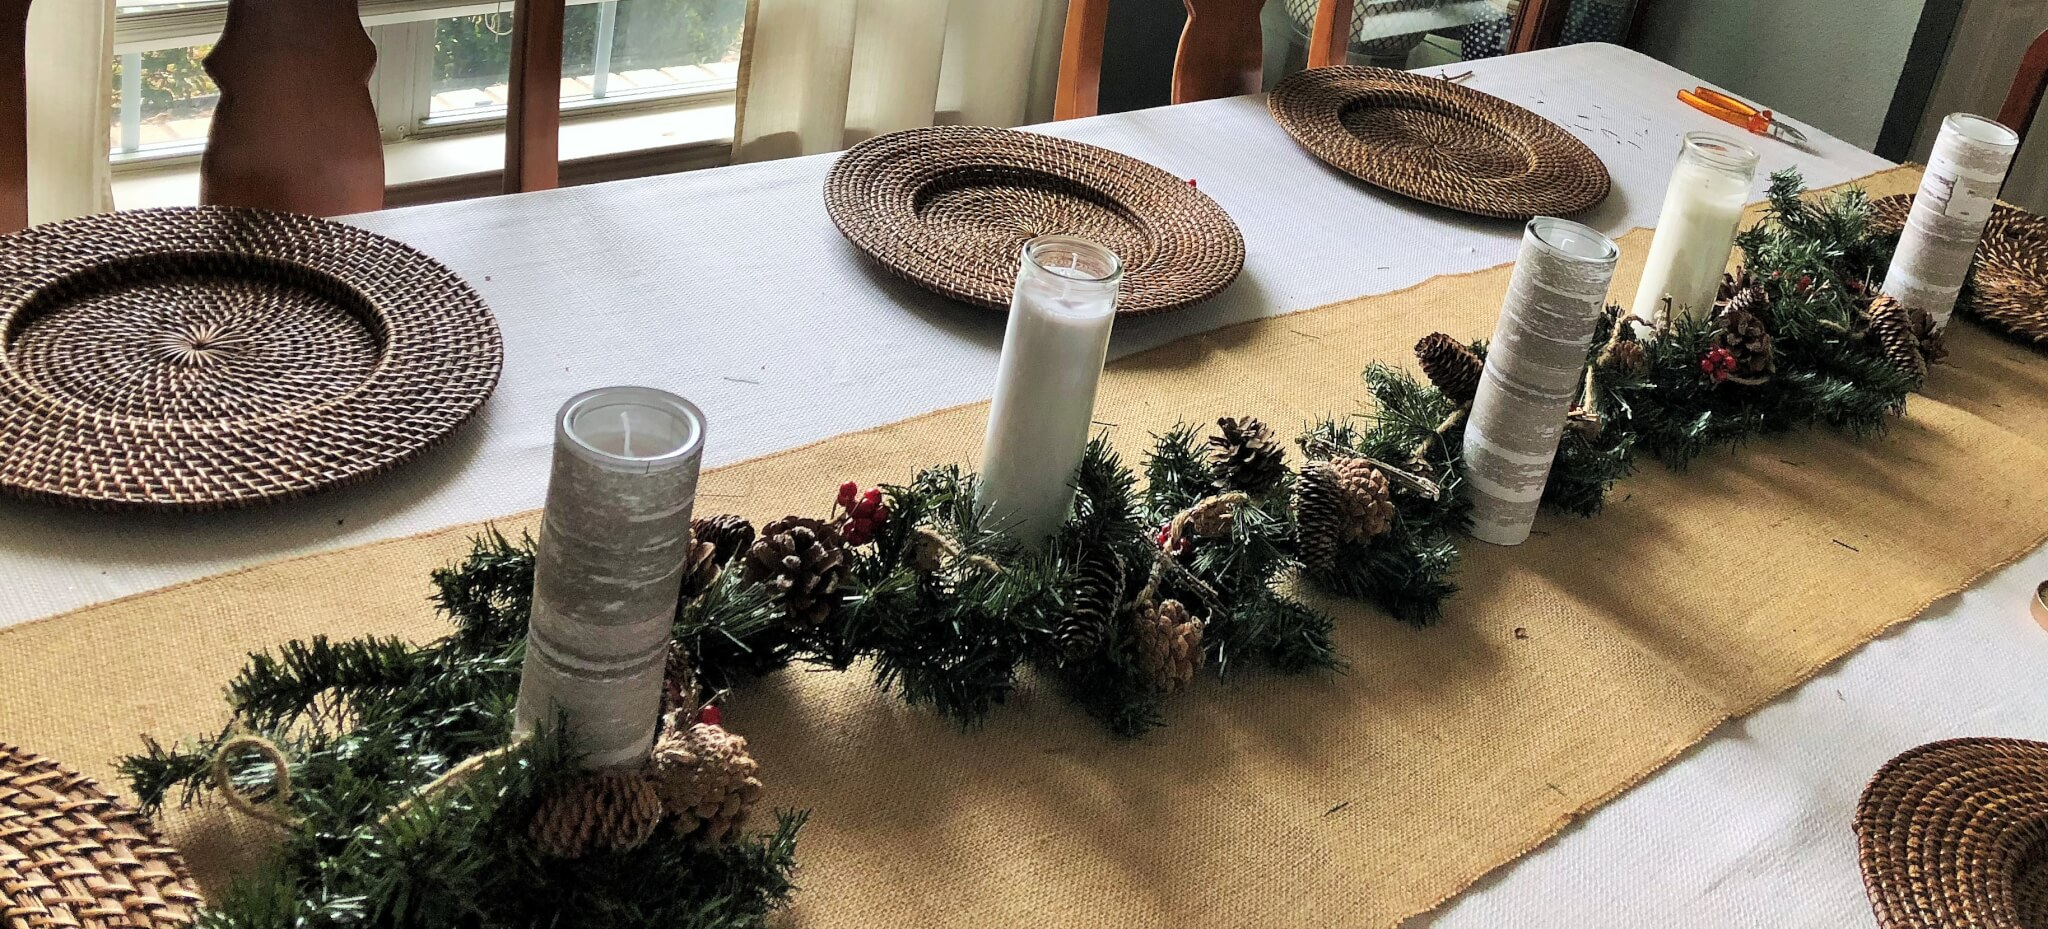 DIY Dollar Store Candles for Christmas Centerpiece